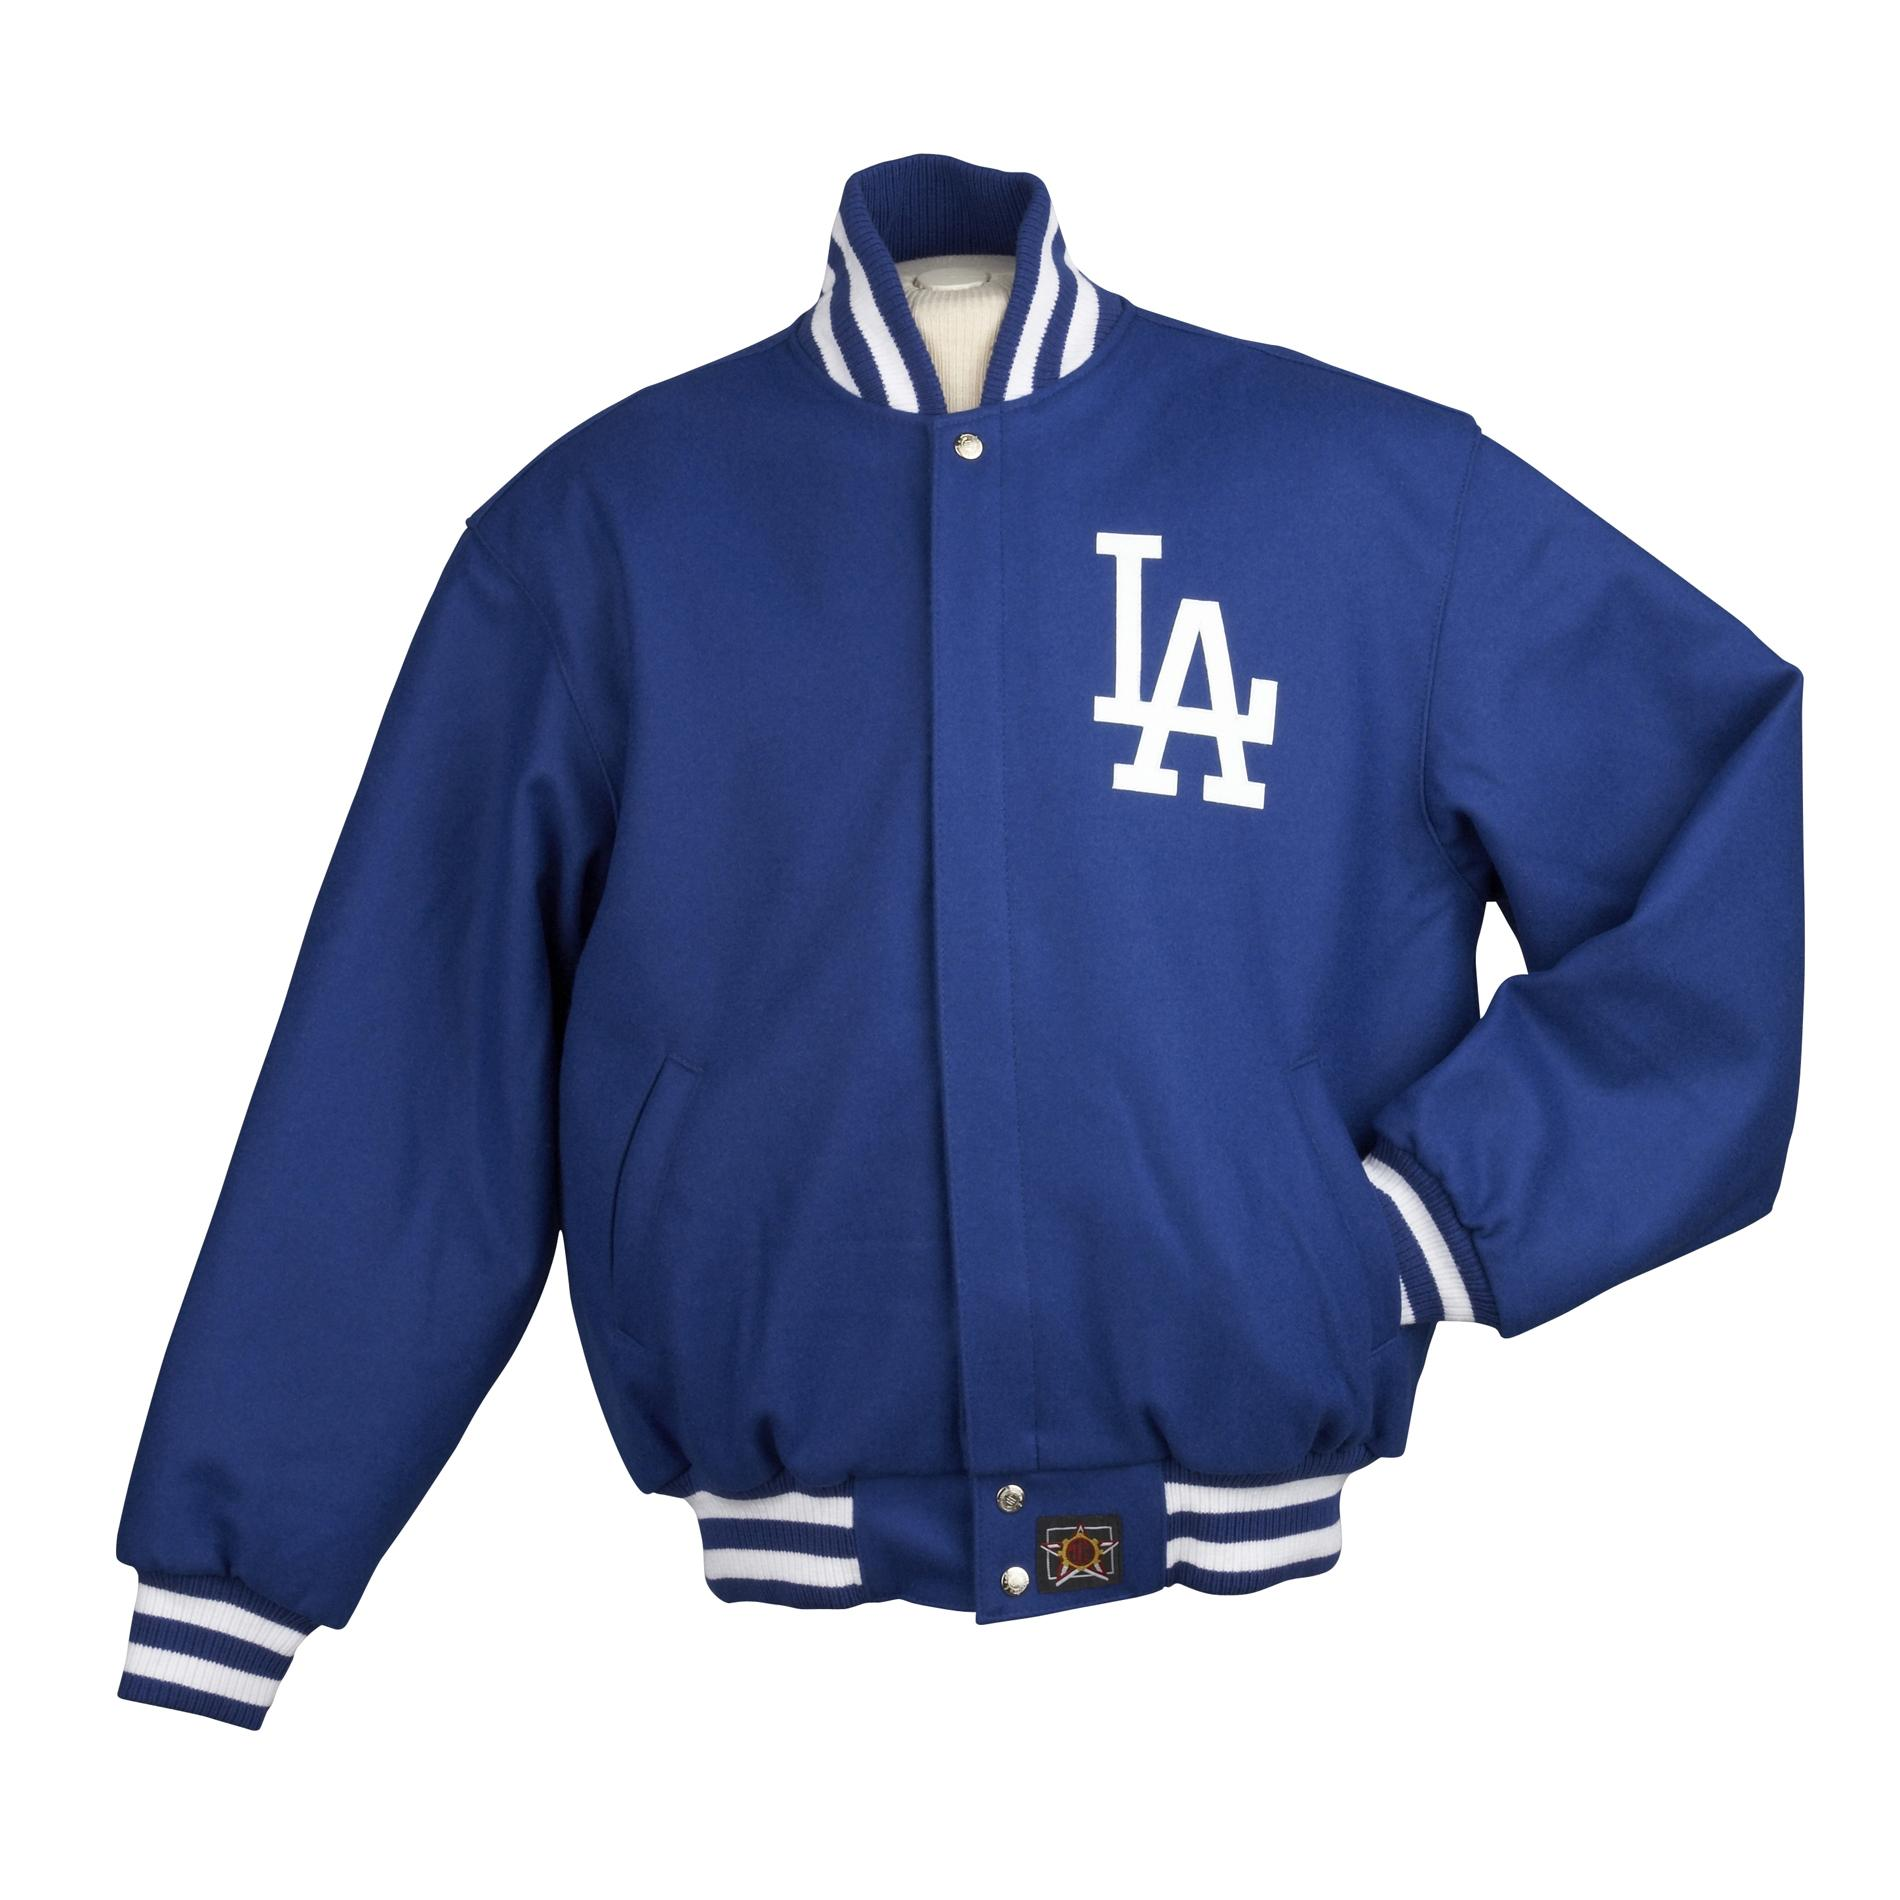 JH Designs Men's Los Angeles Dodgers Domestic Wool Jacket - Thumbnail 2